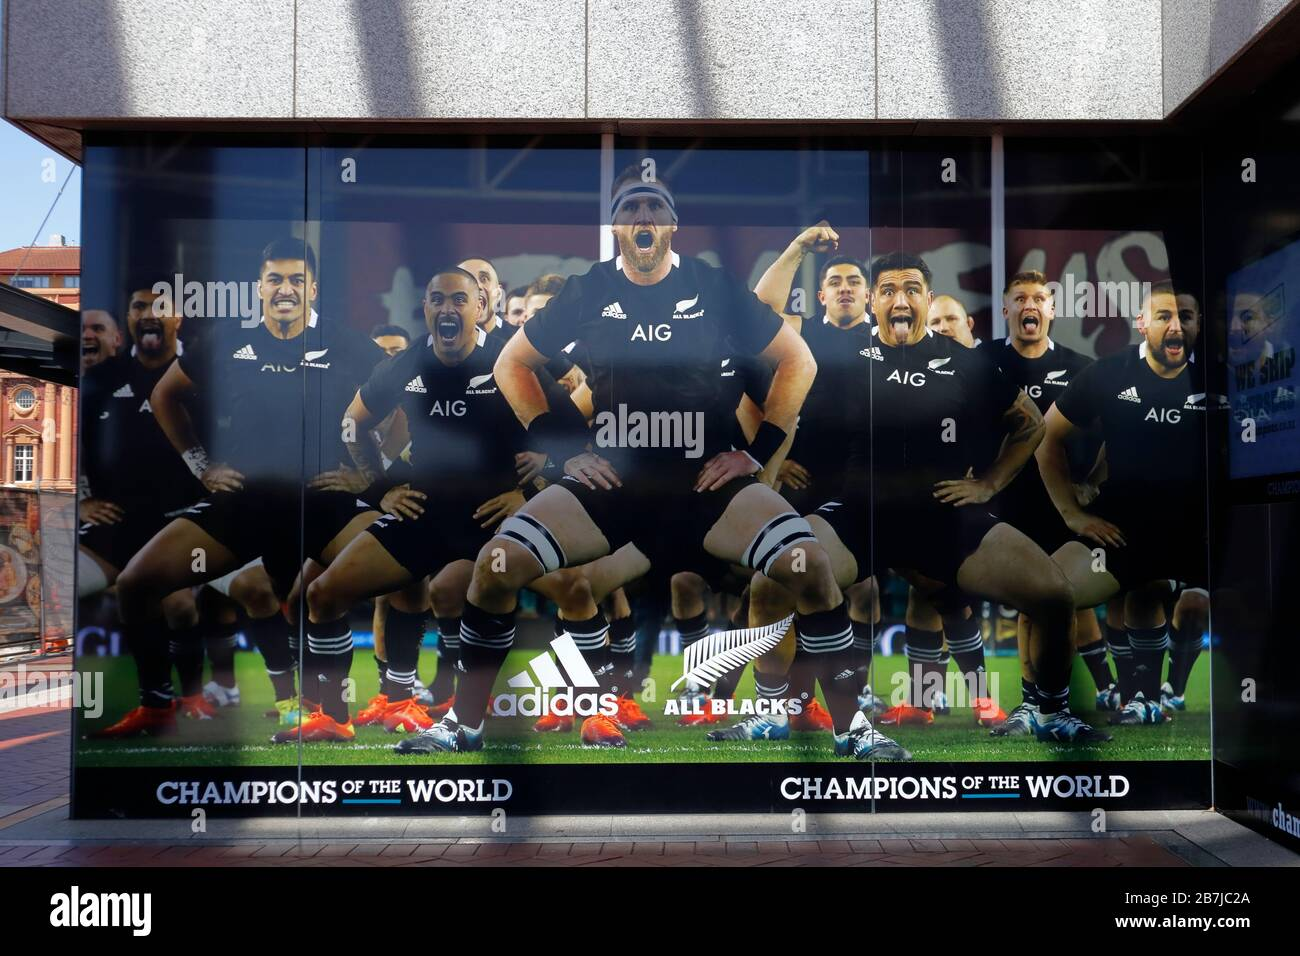 New Zealand national rugby team All Blacks performing the traditional haka. Billboard poster in Auckland, New Zealand during the 2019 Rugby World Cup Stock Photo